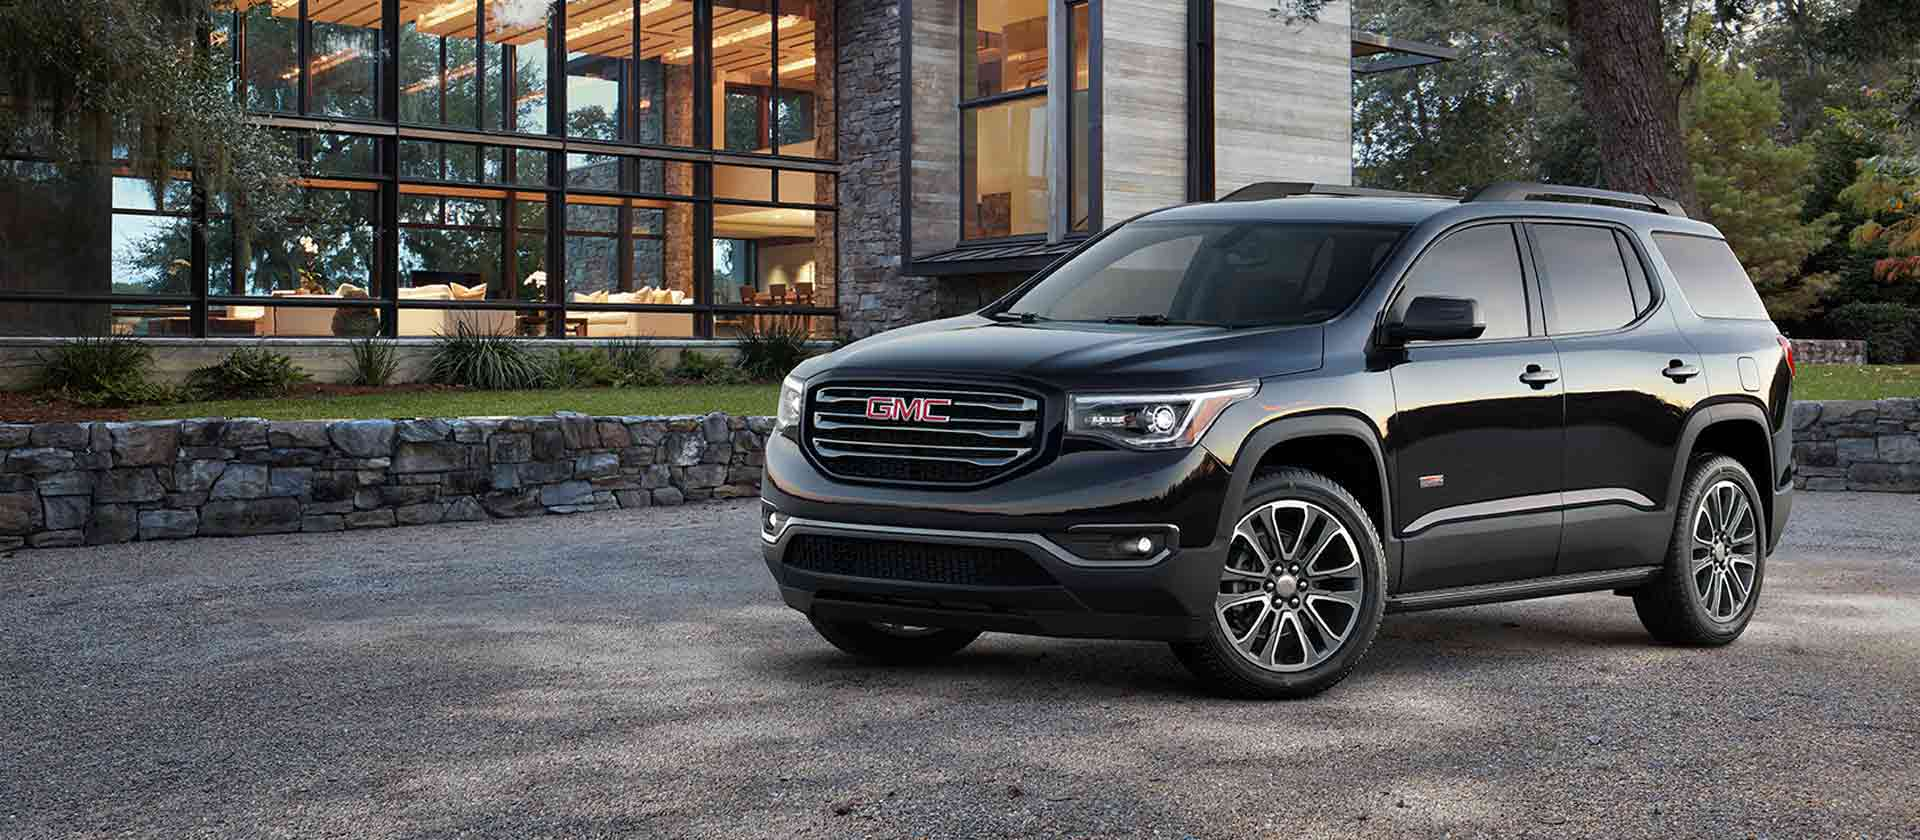 a spectacular ride the 2017 gmc acadia jim curley buick gmc. Black Bedroom Furniture Sets. Home Design Ideas